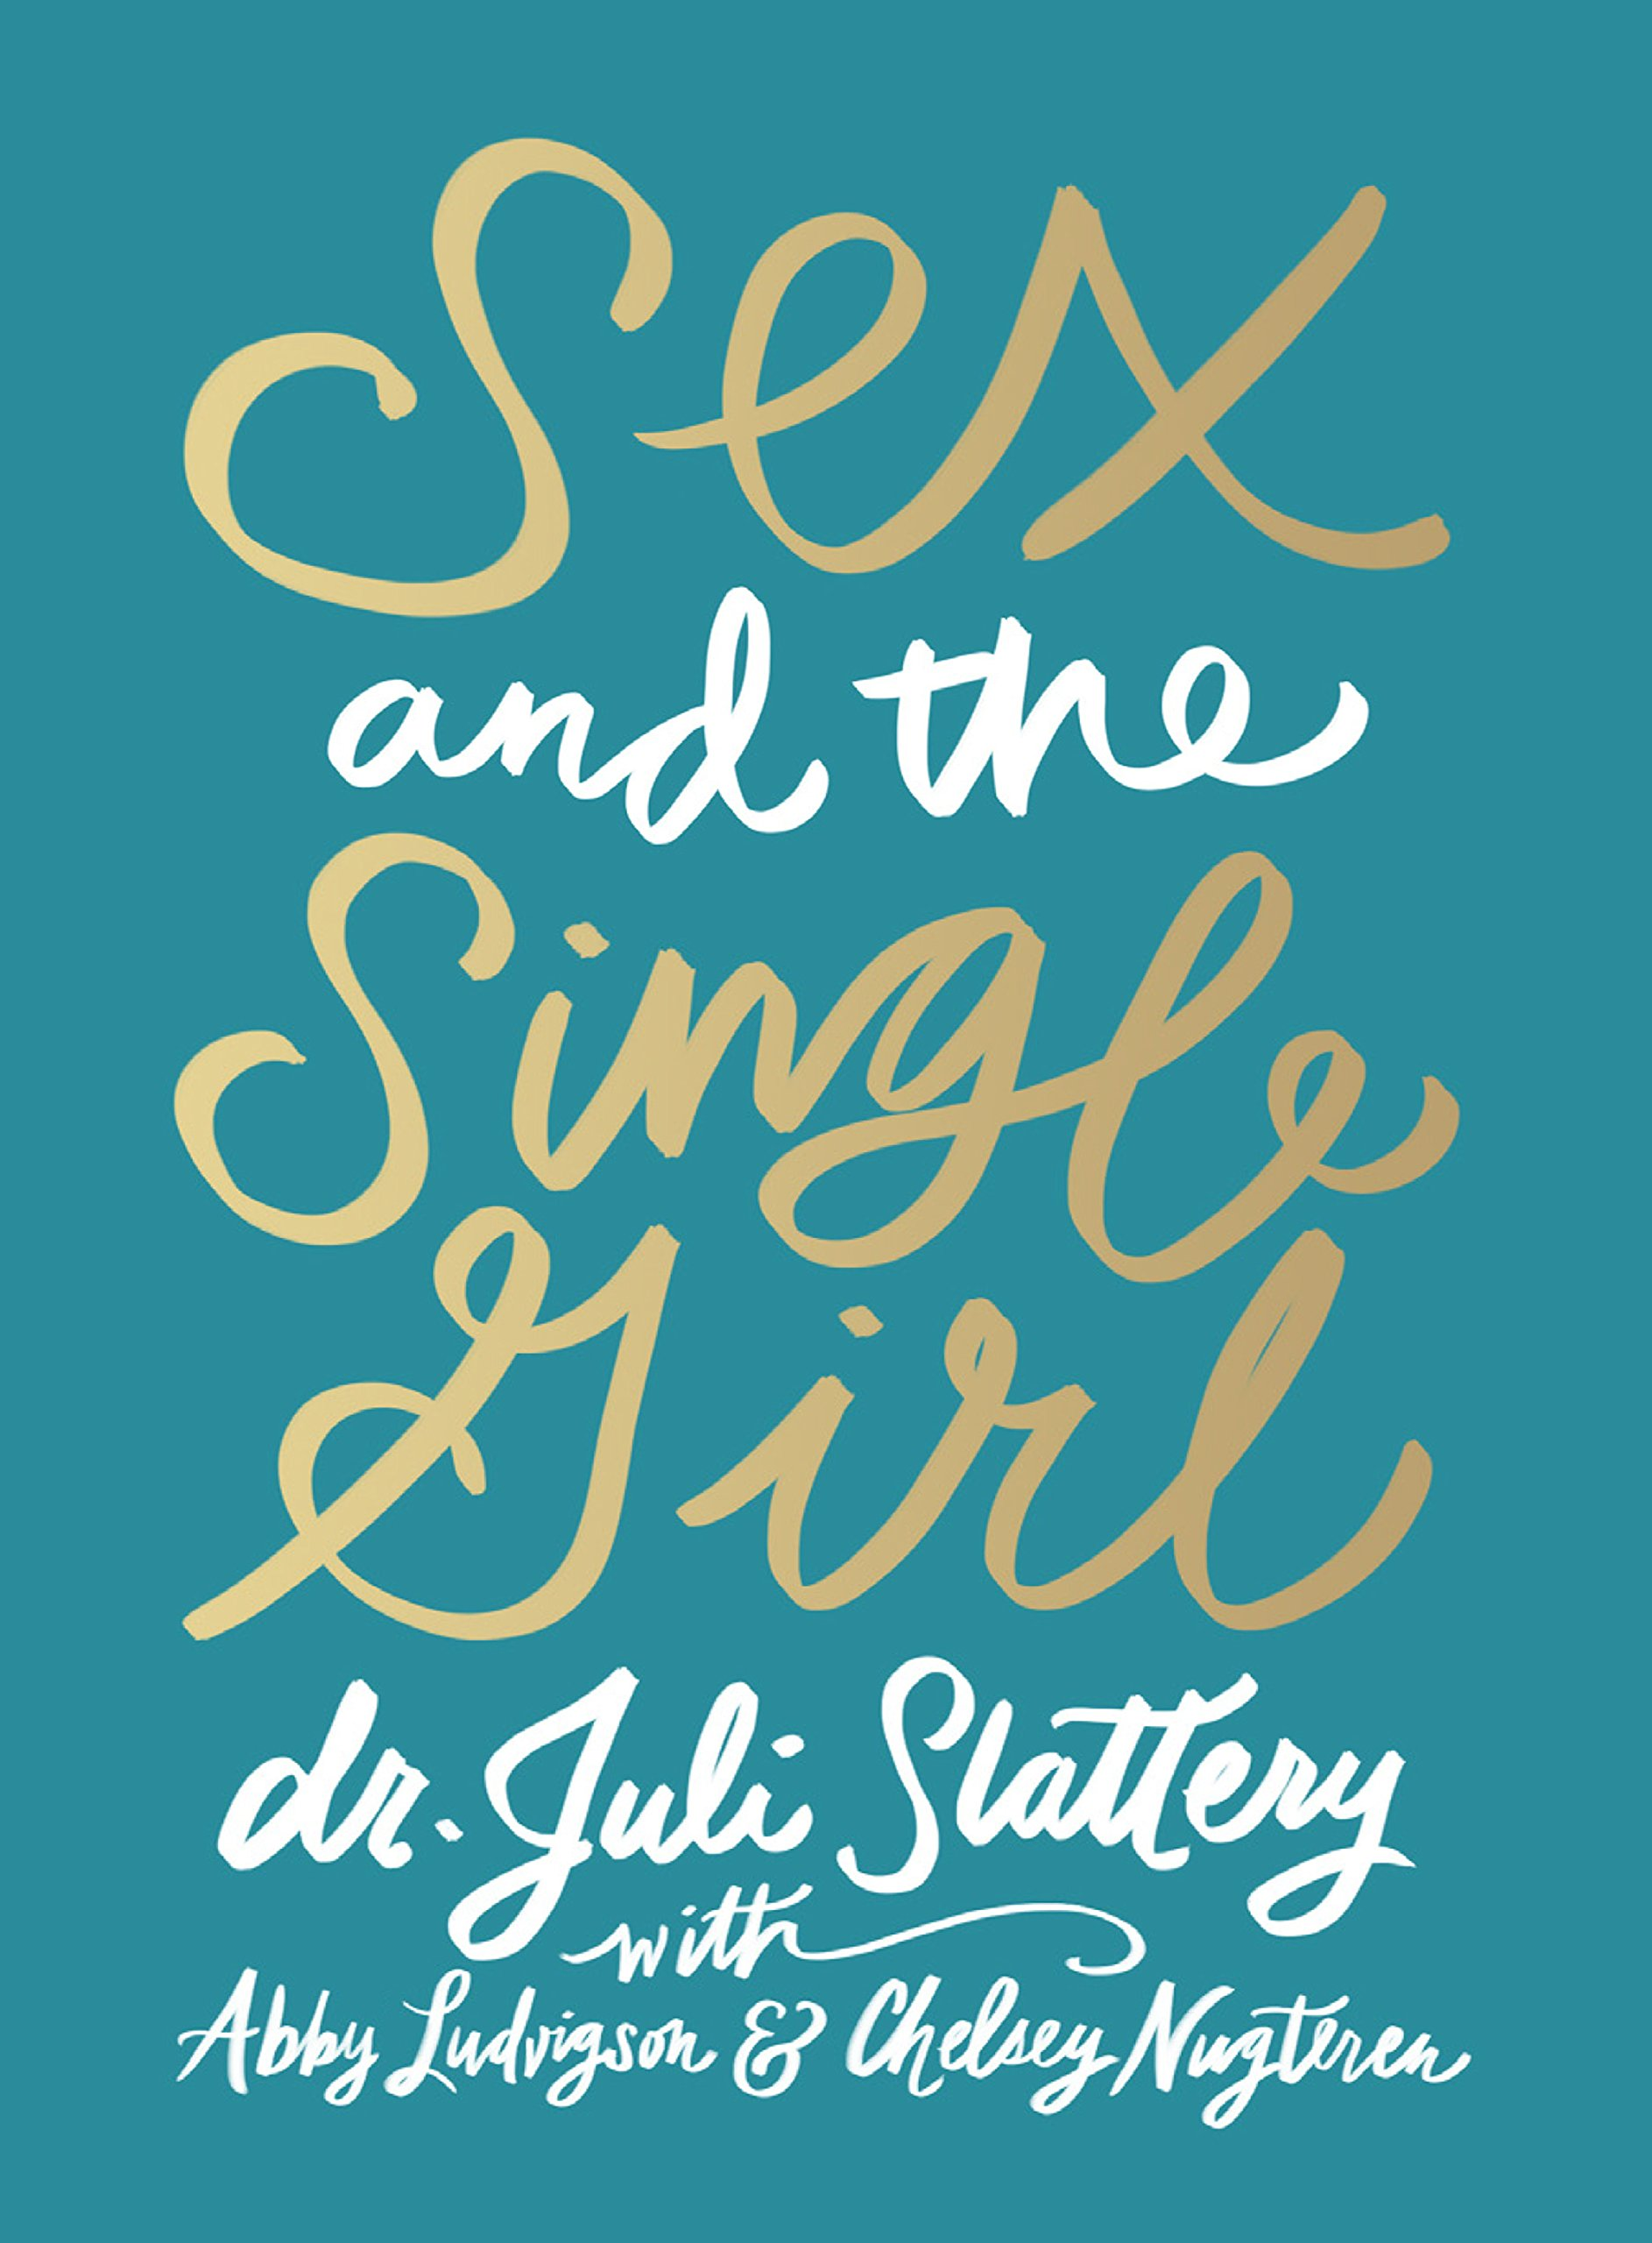 Sex and the Single Girl  by Dr. Juli Slattery